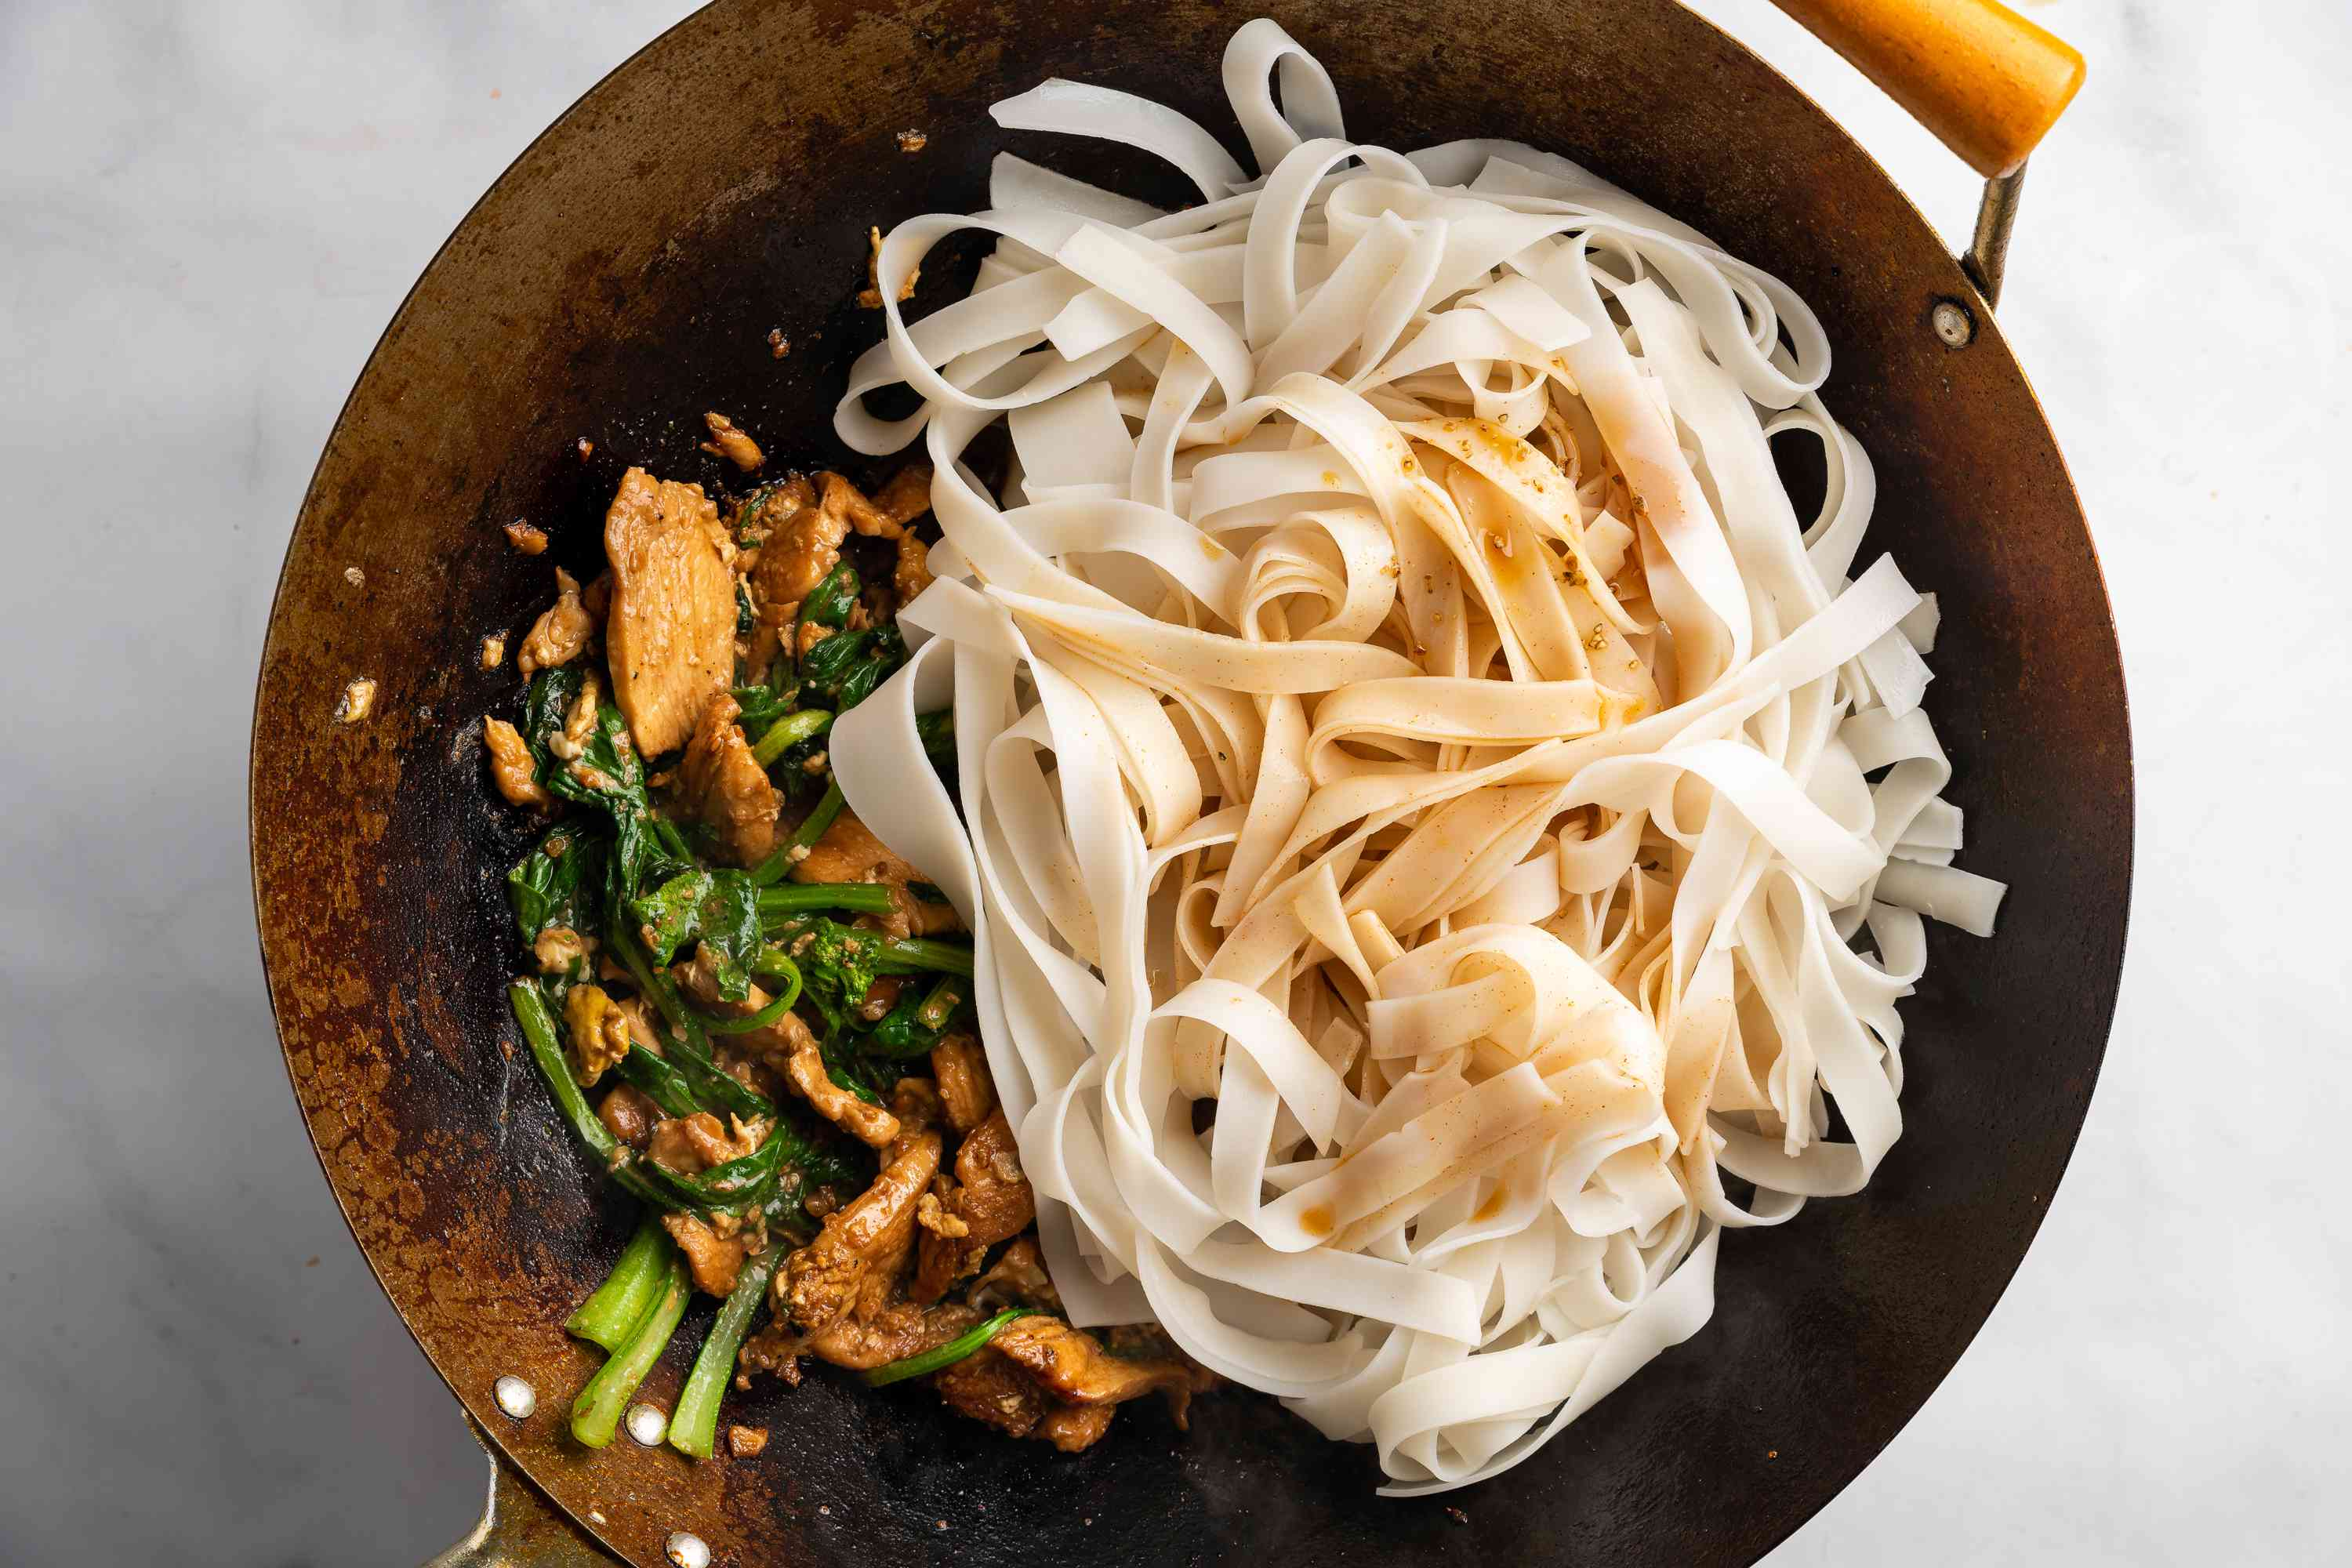 Add the noodles to the wok and pour the stir-fry sauce over the noodles